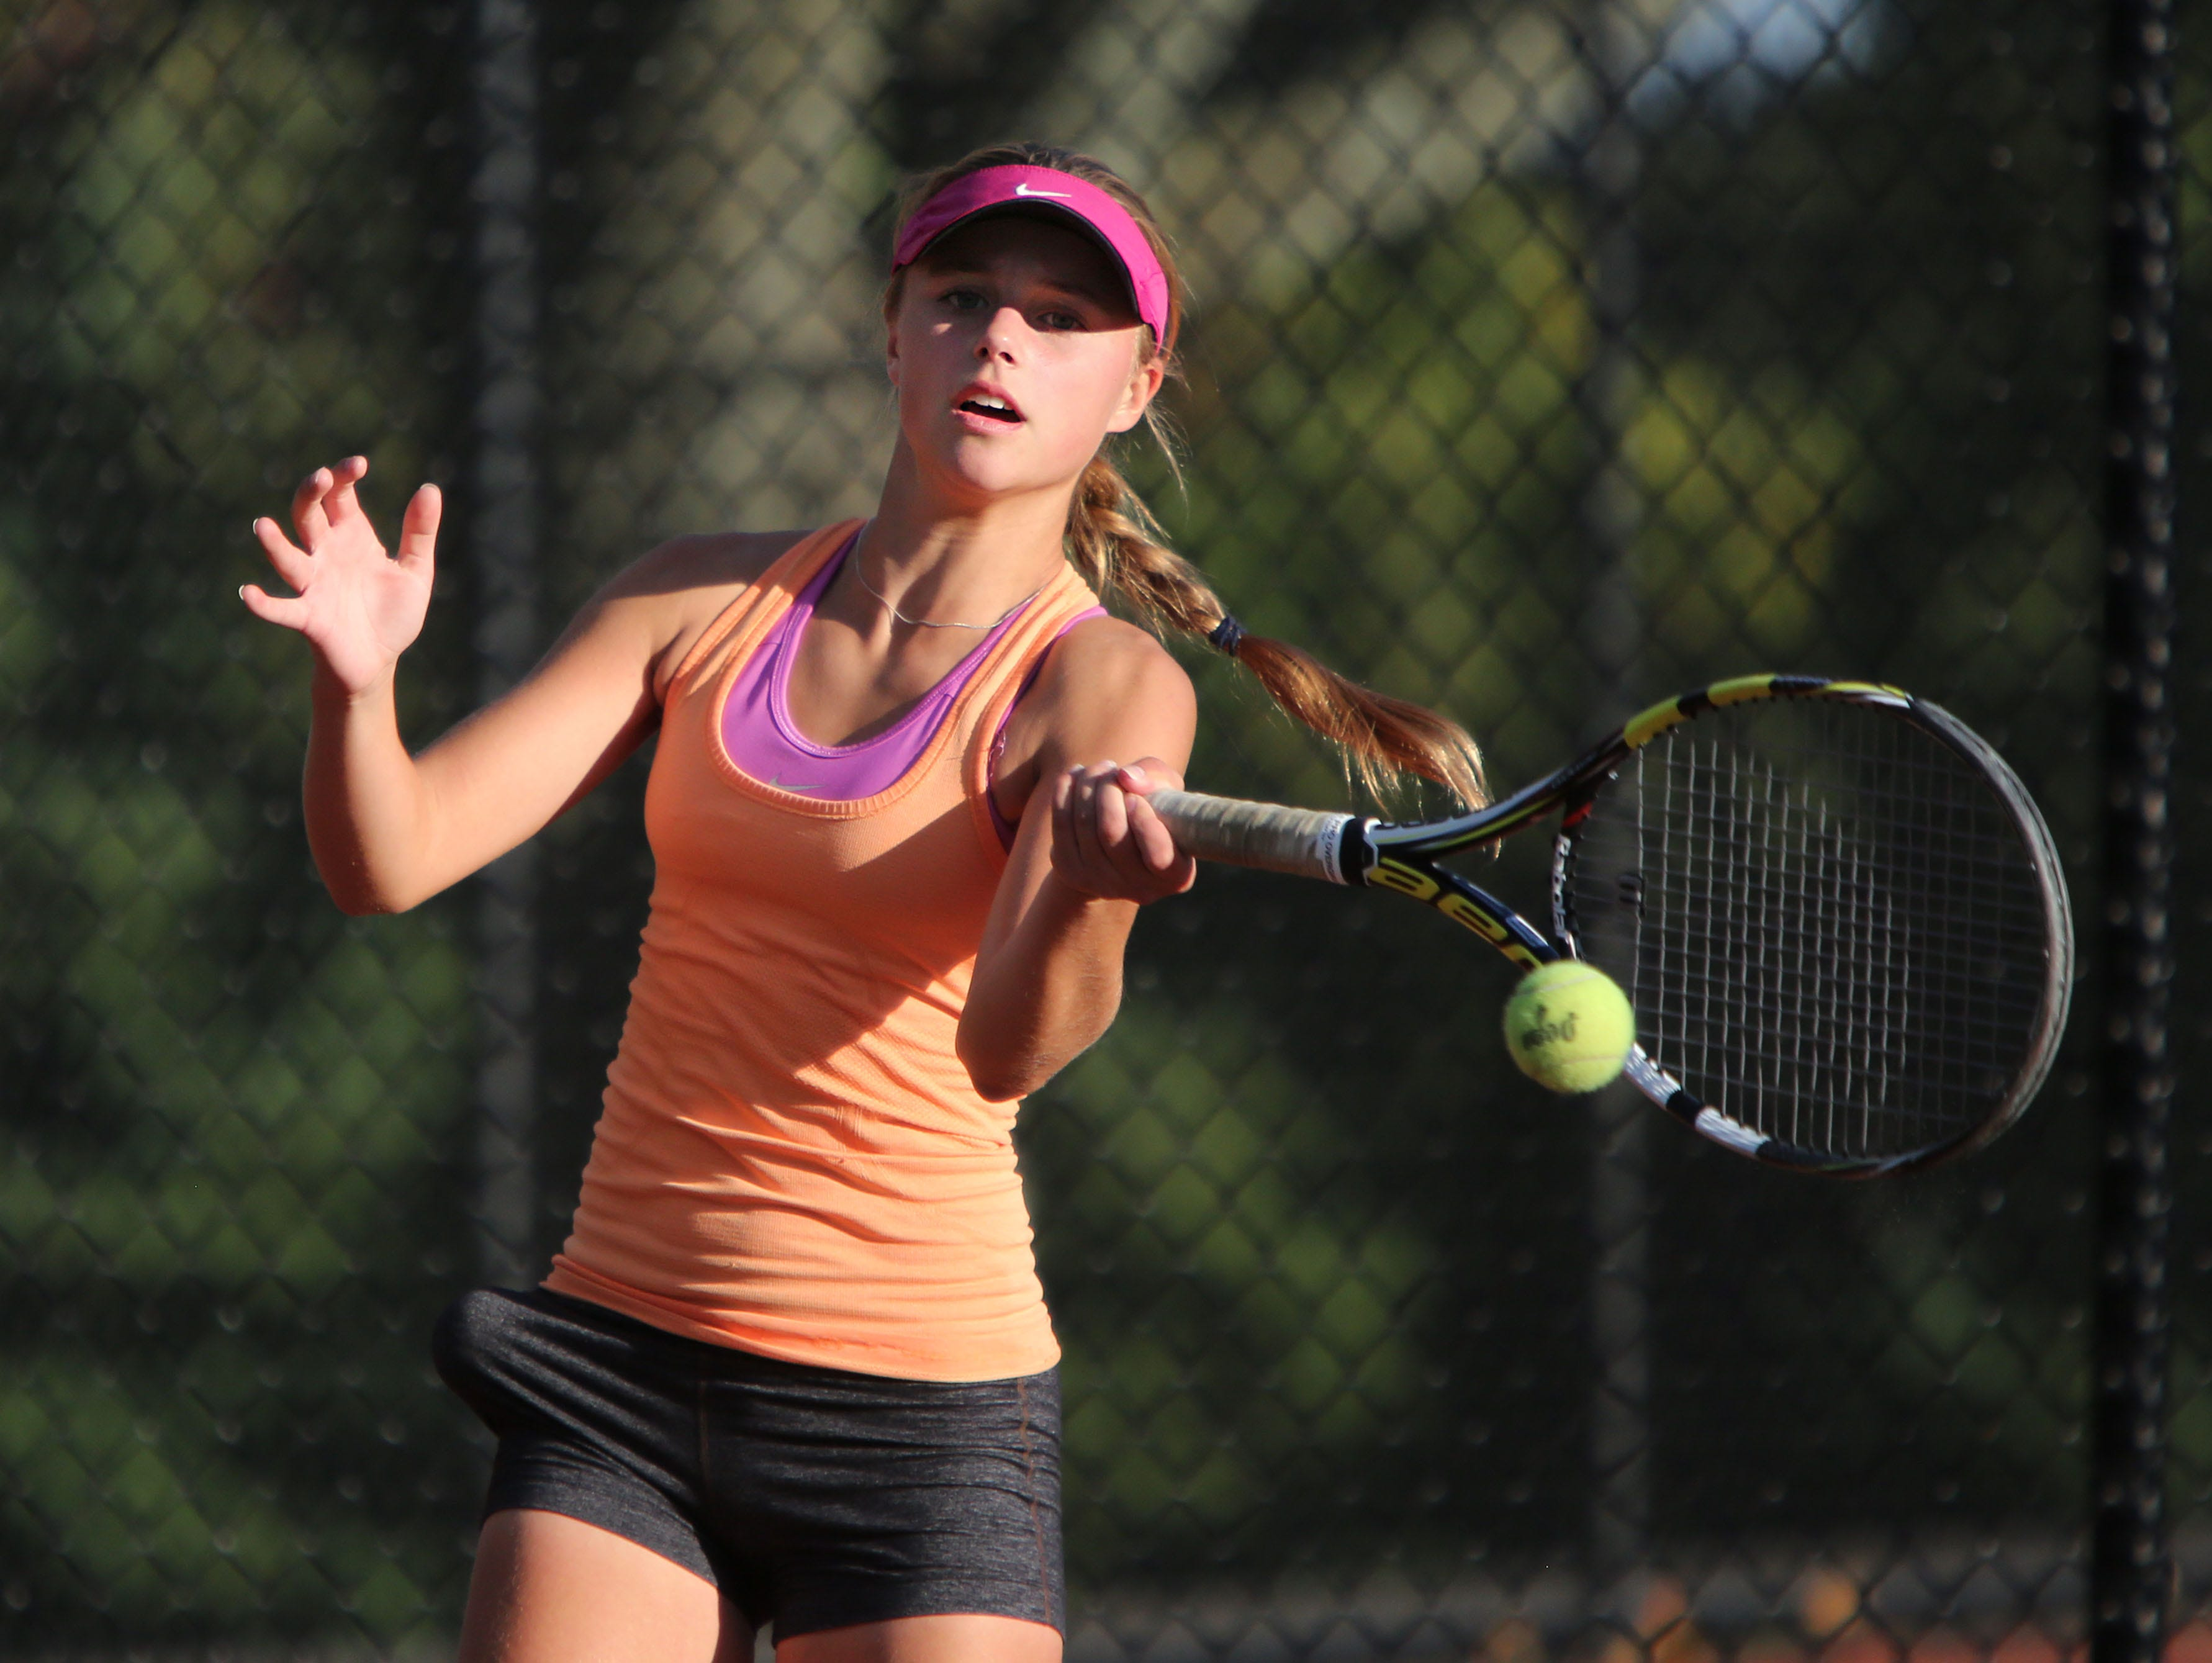 Mamaroneck's Emma Lella returns the ball against Suffern's Sydney Kaplan in the singles finals in the Conference II tennis tournament, Oct. 16, 2015 at White Plains High School. Mamaroneck's Emma Lella went on to win the tournament.